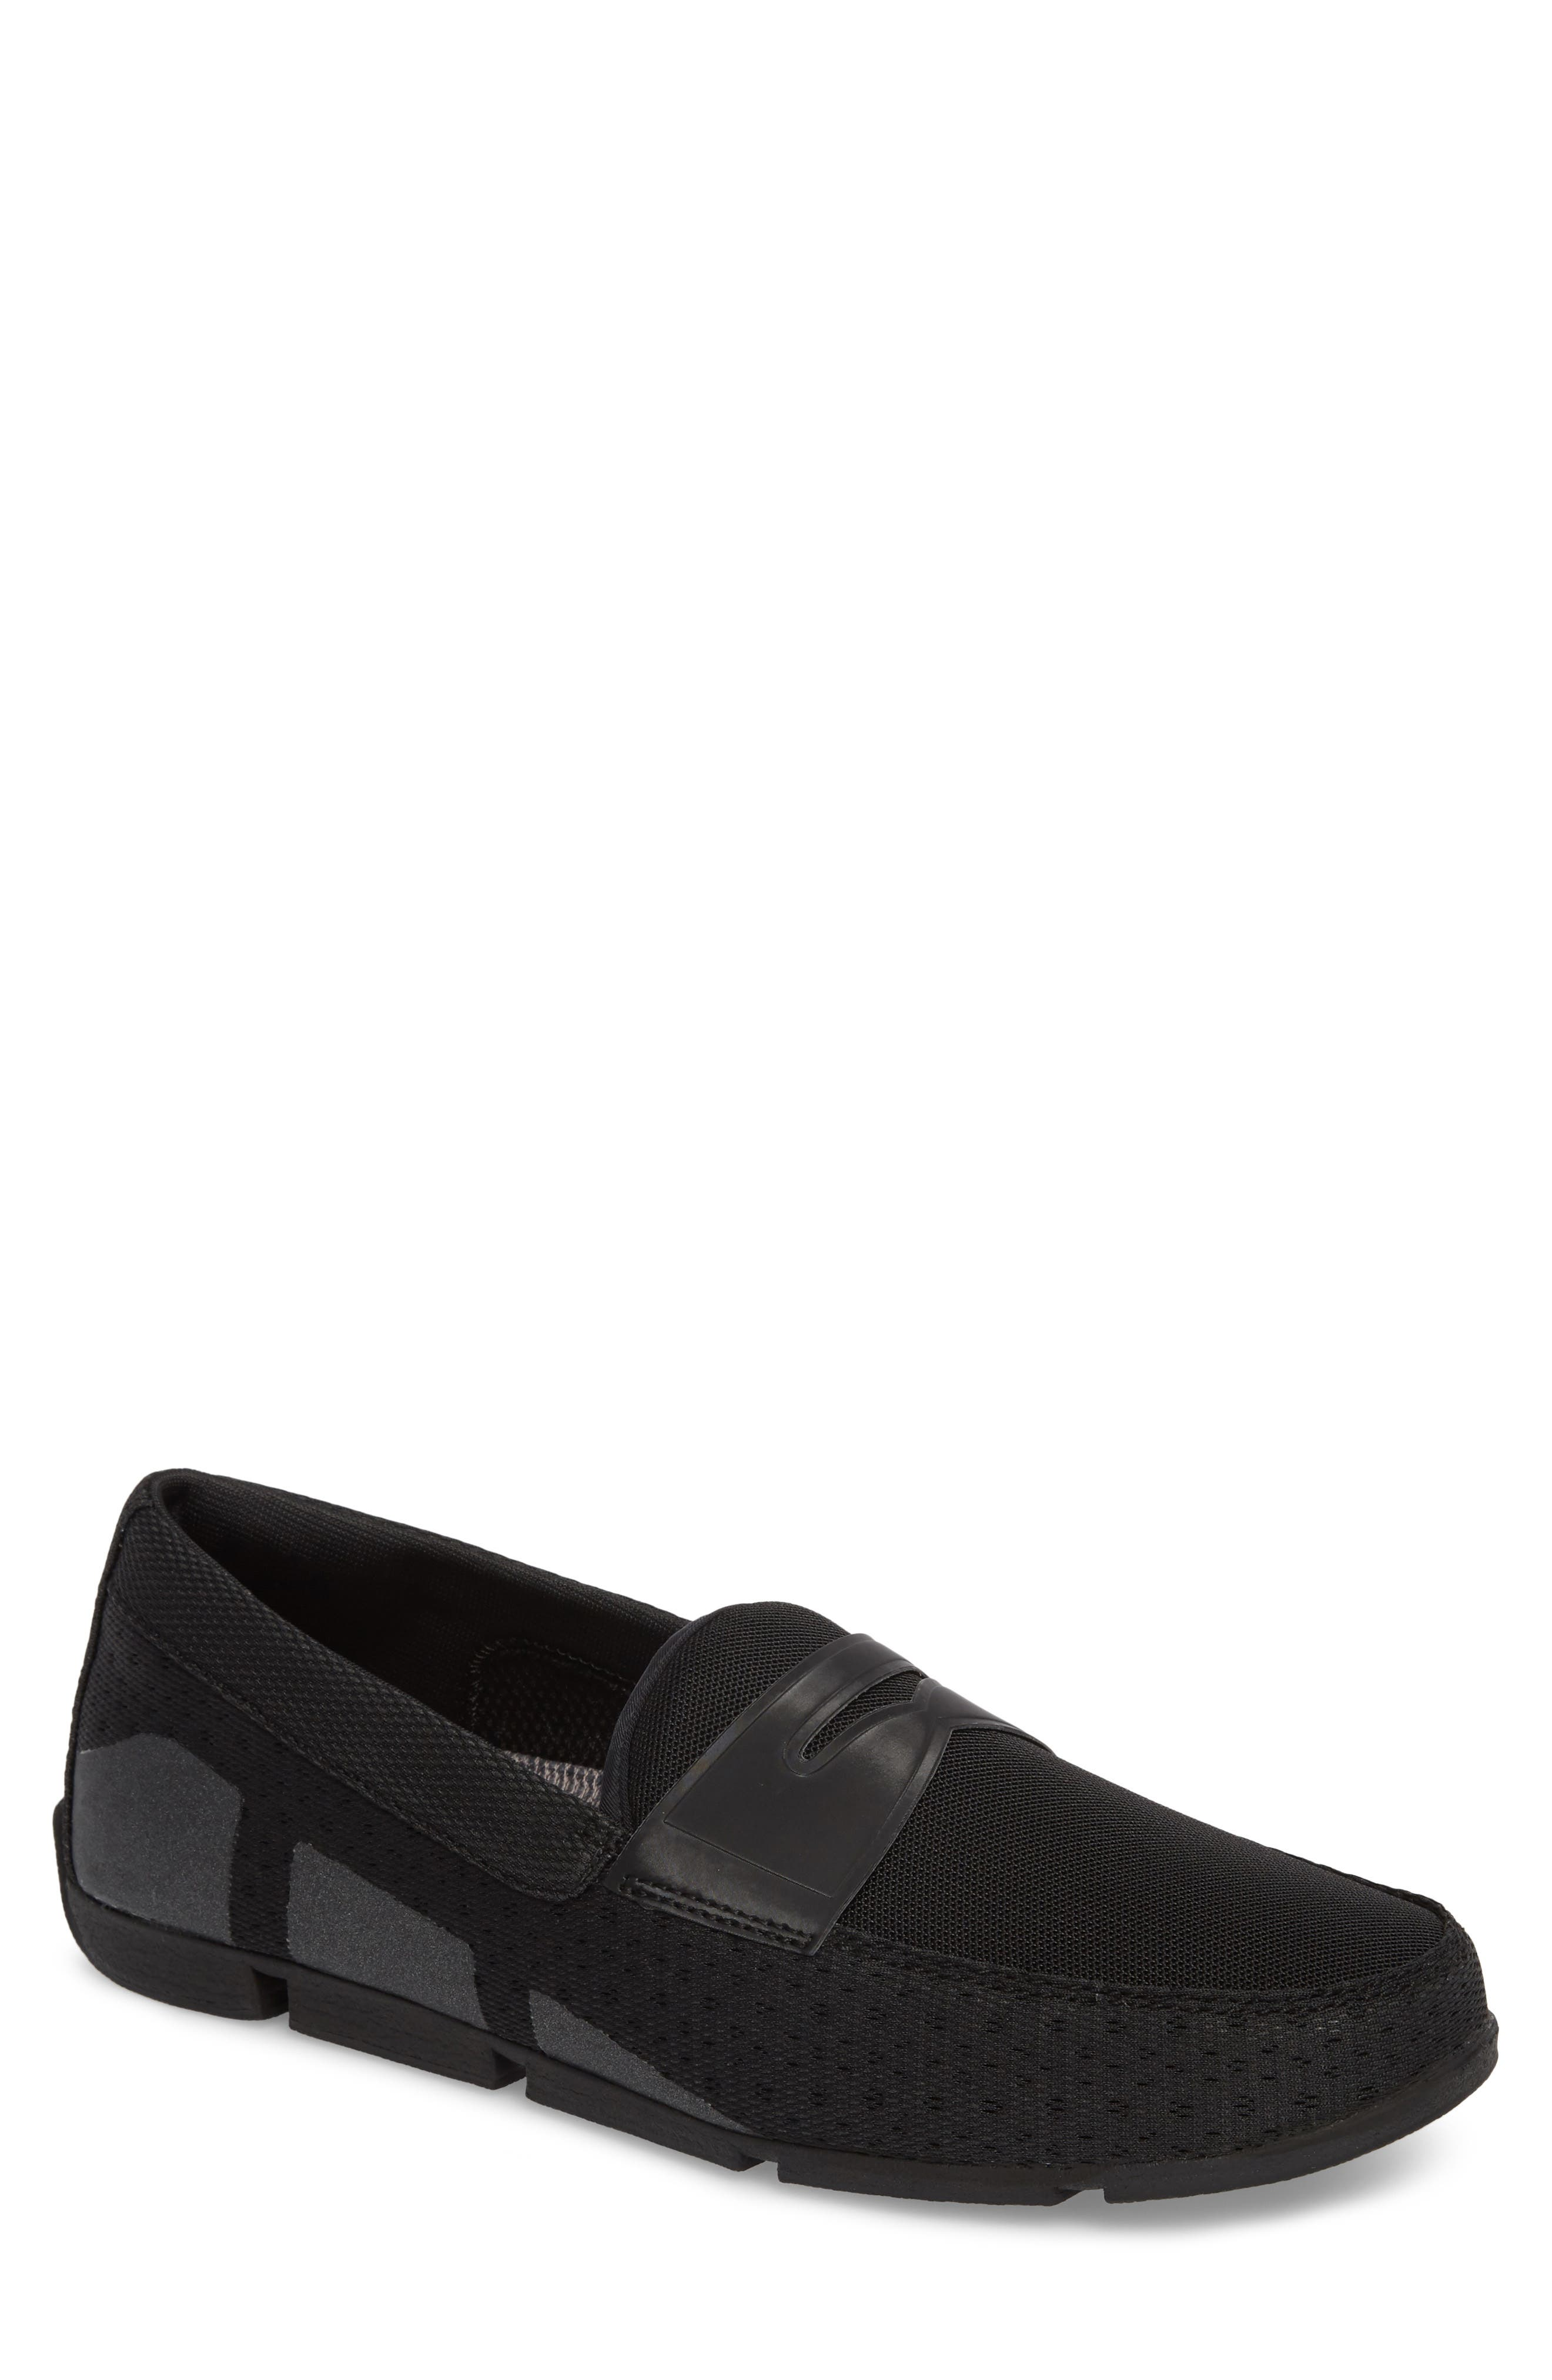 Main Image - Swims Breeze Penny Loafer (Men)